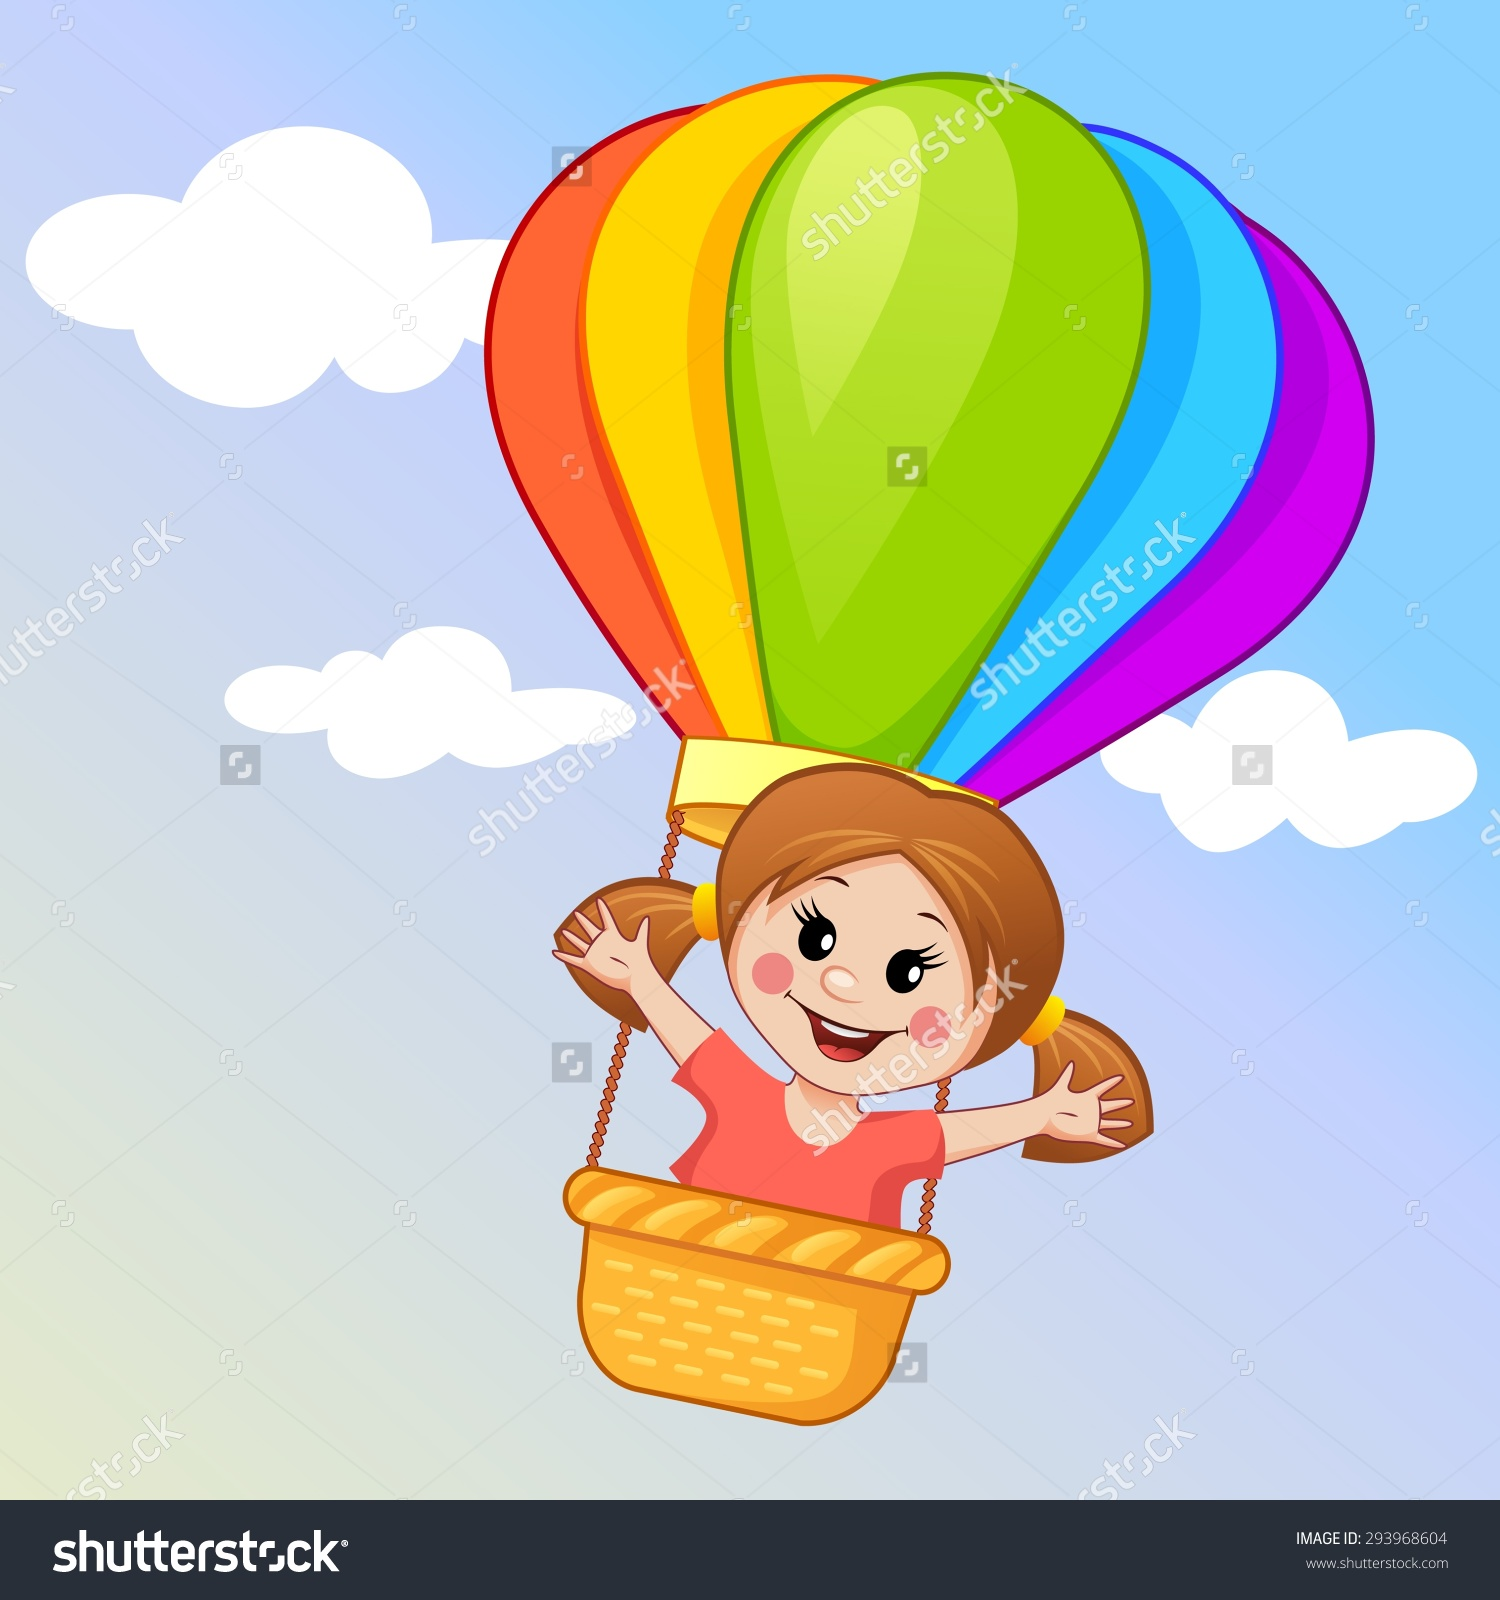 Balloon Ride Clipart Clipground